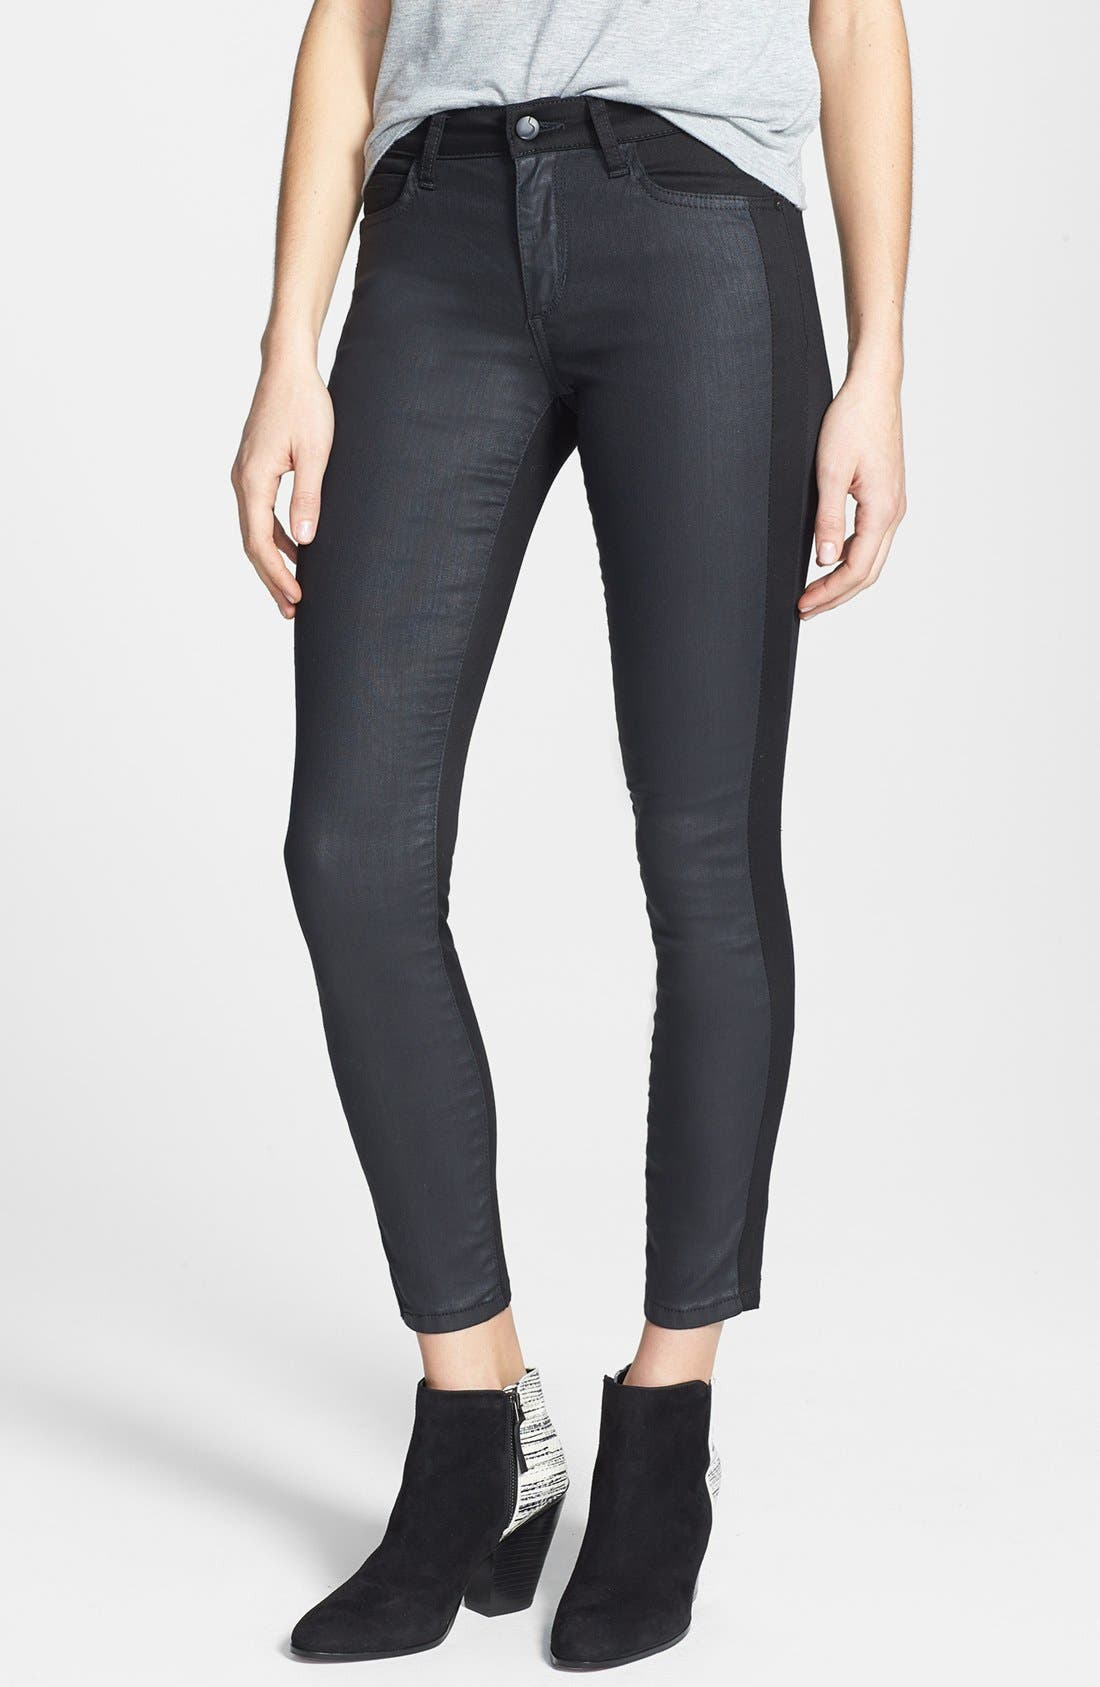 Main Image - Joe's 'The Oblique' Contrast Panel Crop Skinny Jeans (Kathy)